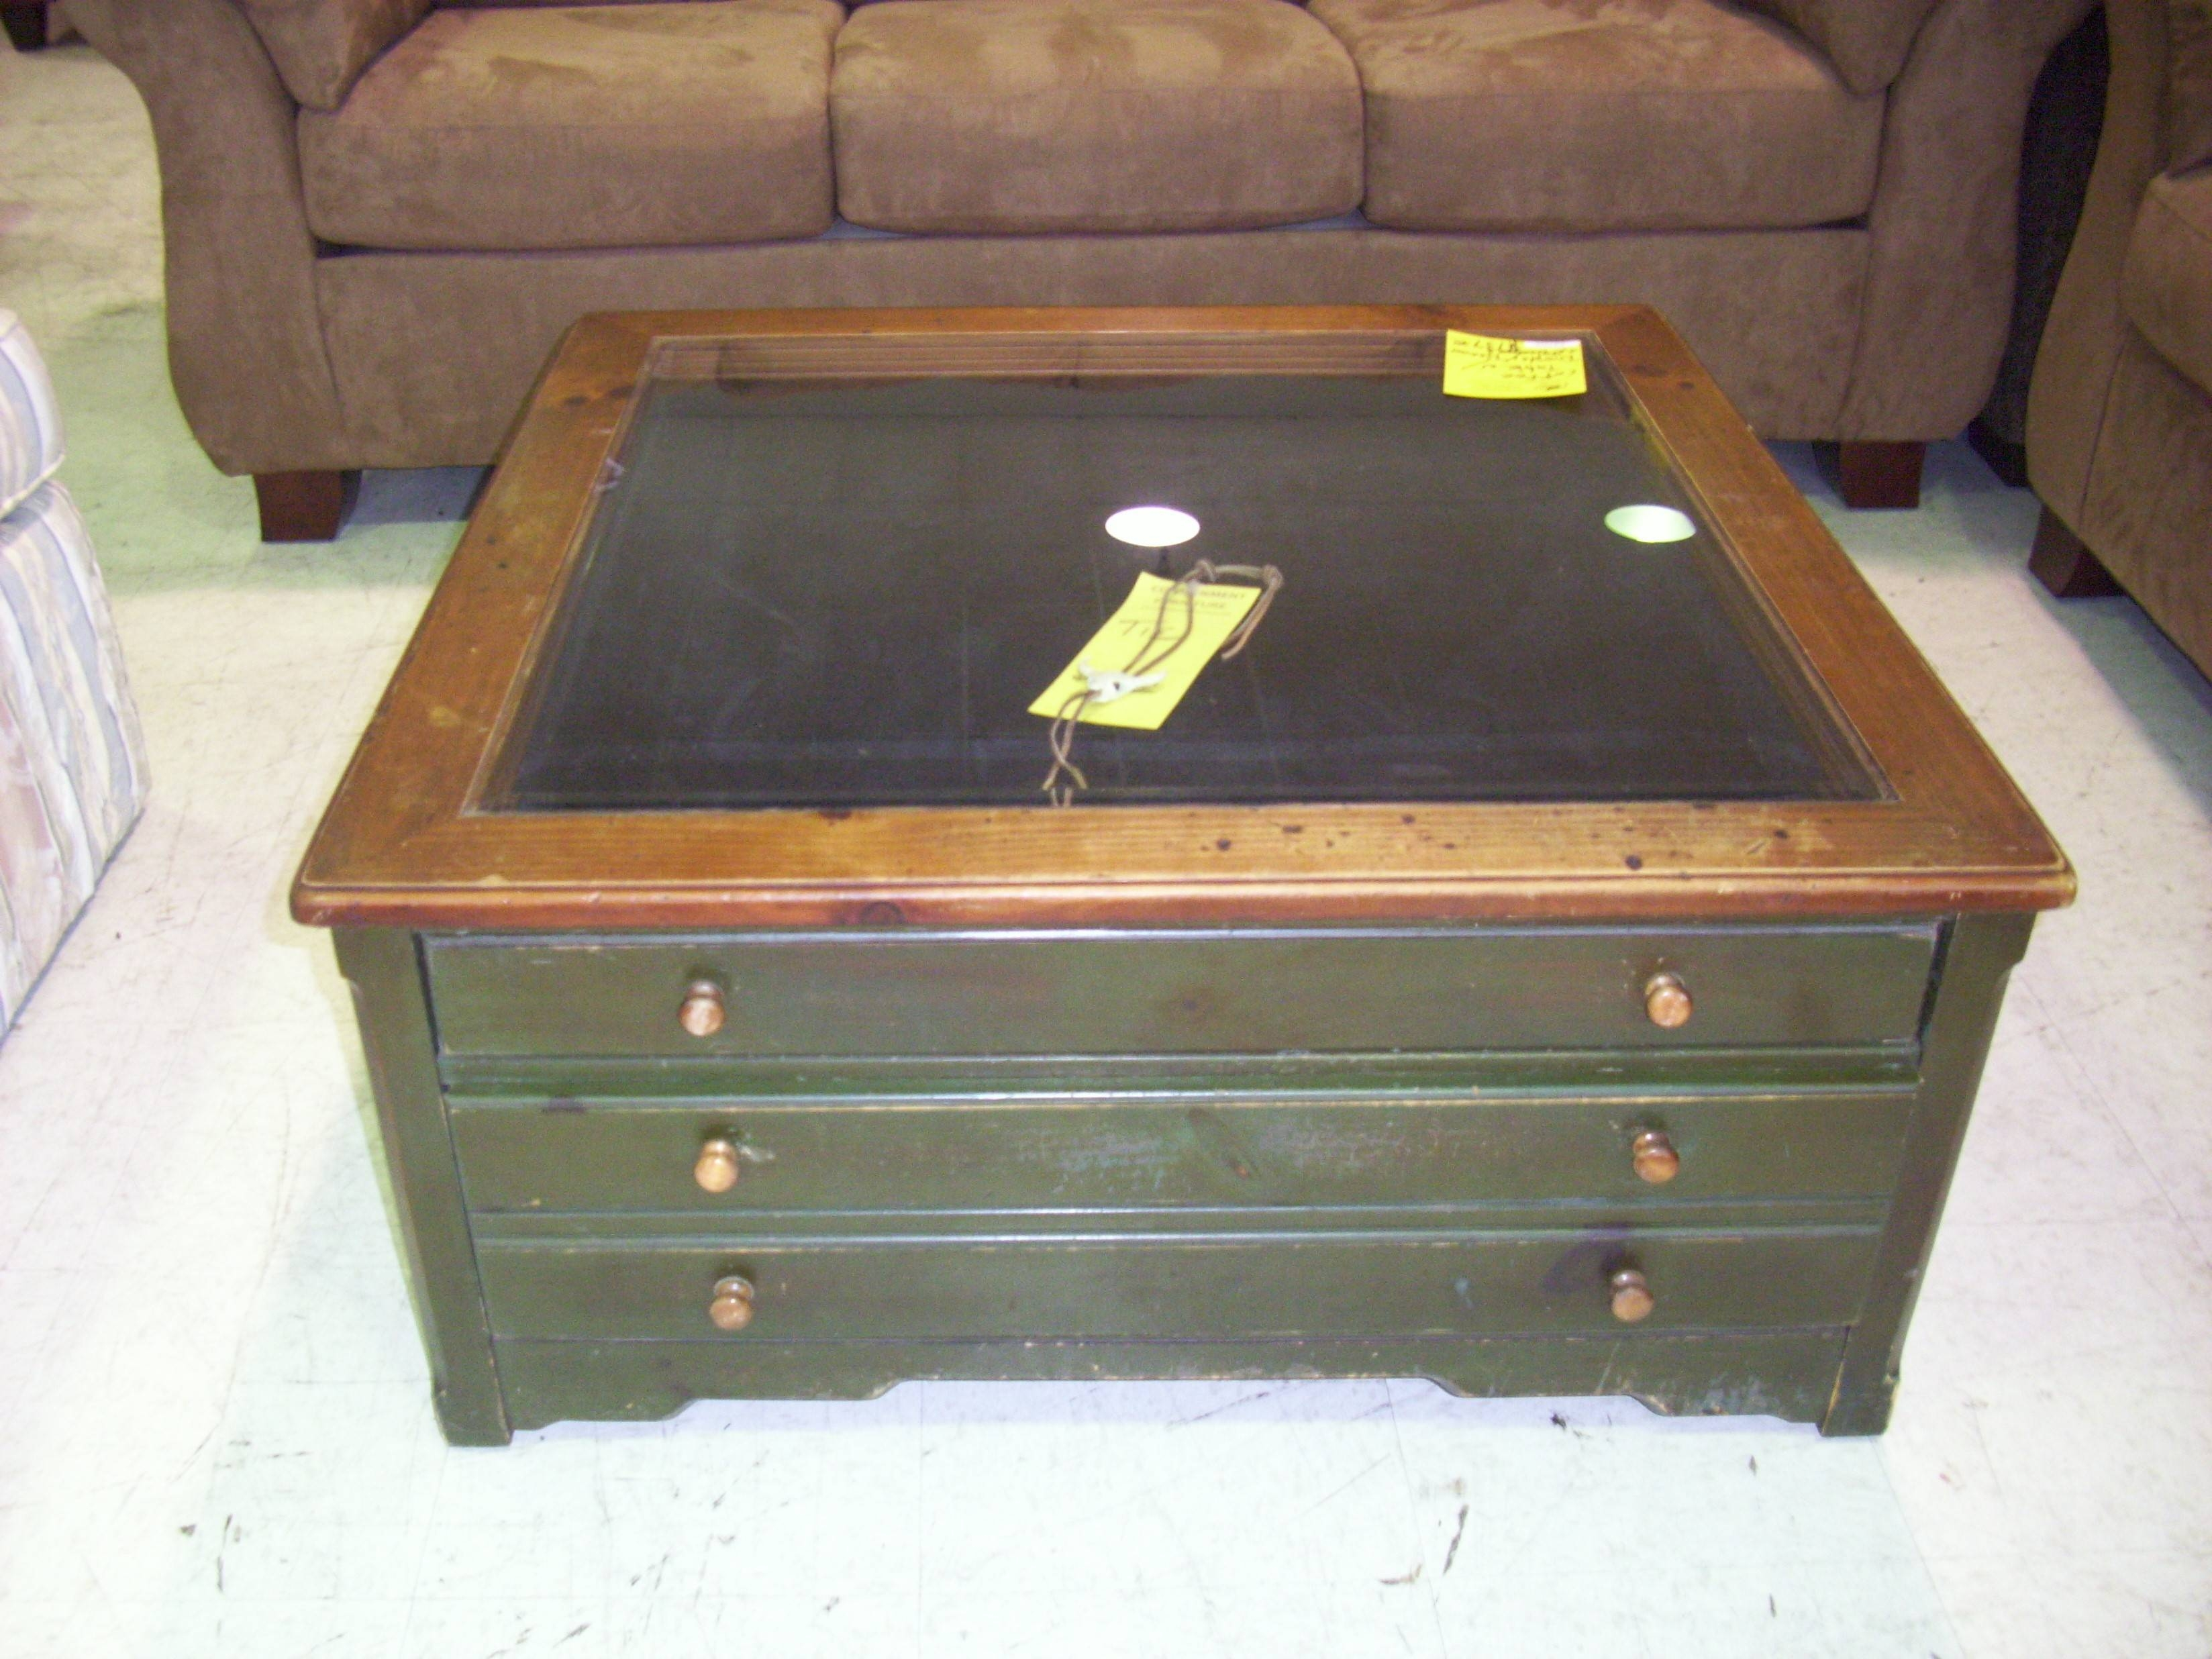 Dark Gray Wooden Table With Three Drawers Plus Square Glass Pertaining To Glass Top Storage Coffee Tables (View 7 of 30)